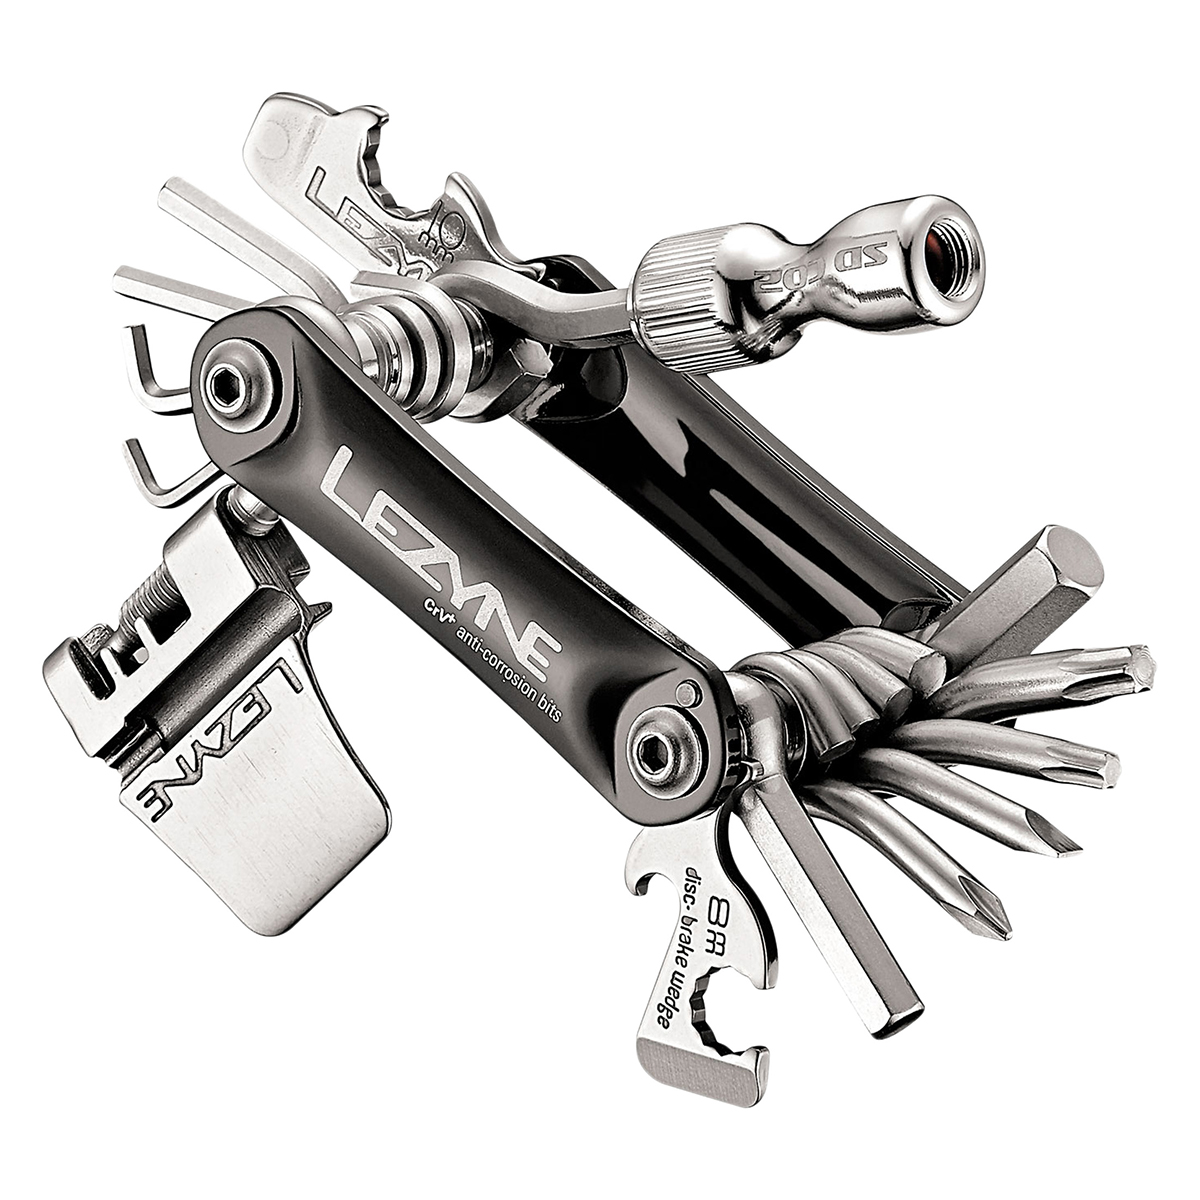 Lezyne RAP 21 Co2 21 Function Multi Tool, Aluminum Black Sides